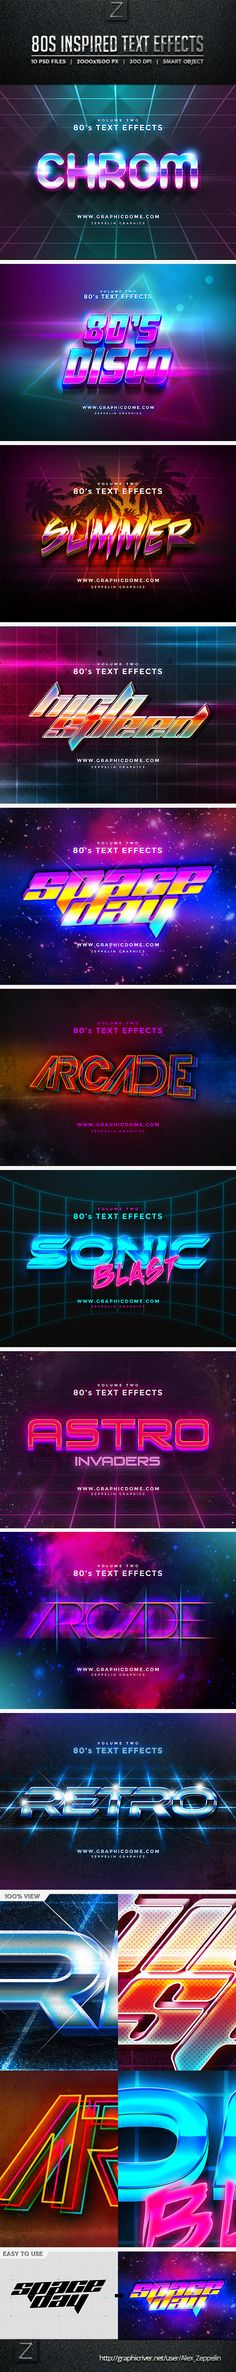 80s Text Effects #photoshop Download here: http://graphicriver.net/item/80s-text-effects/10256165?ref=ksioks